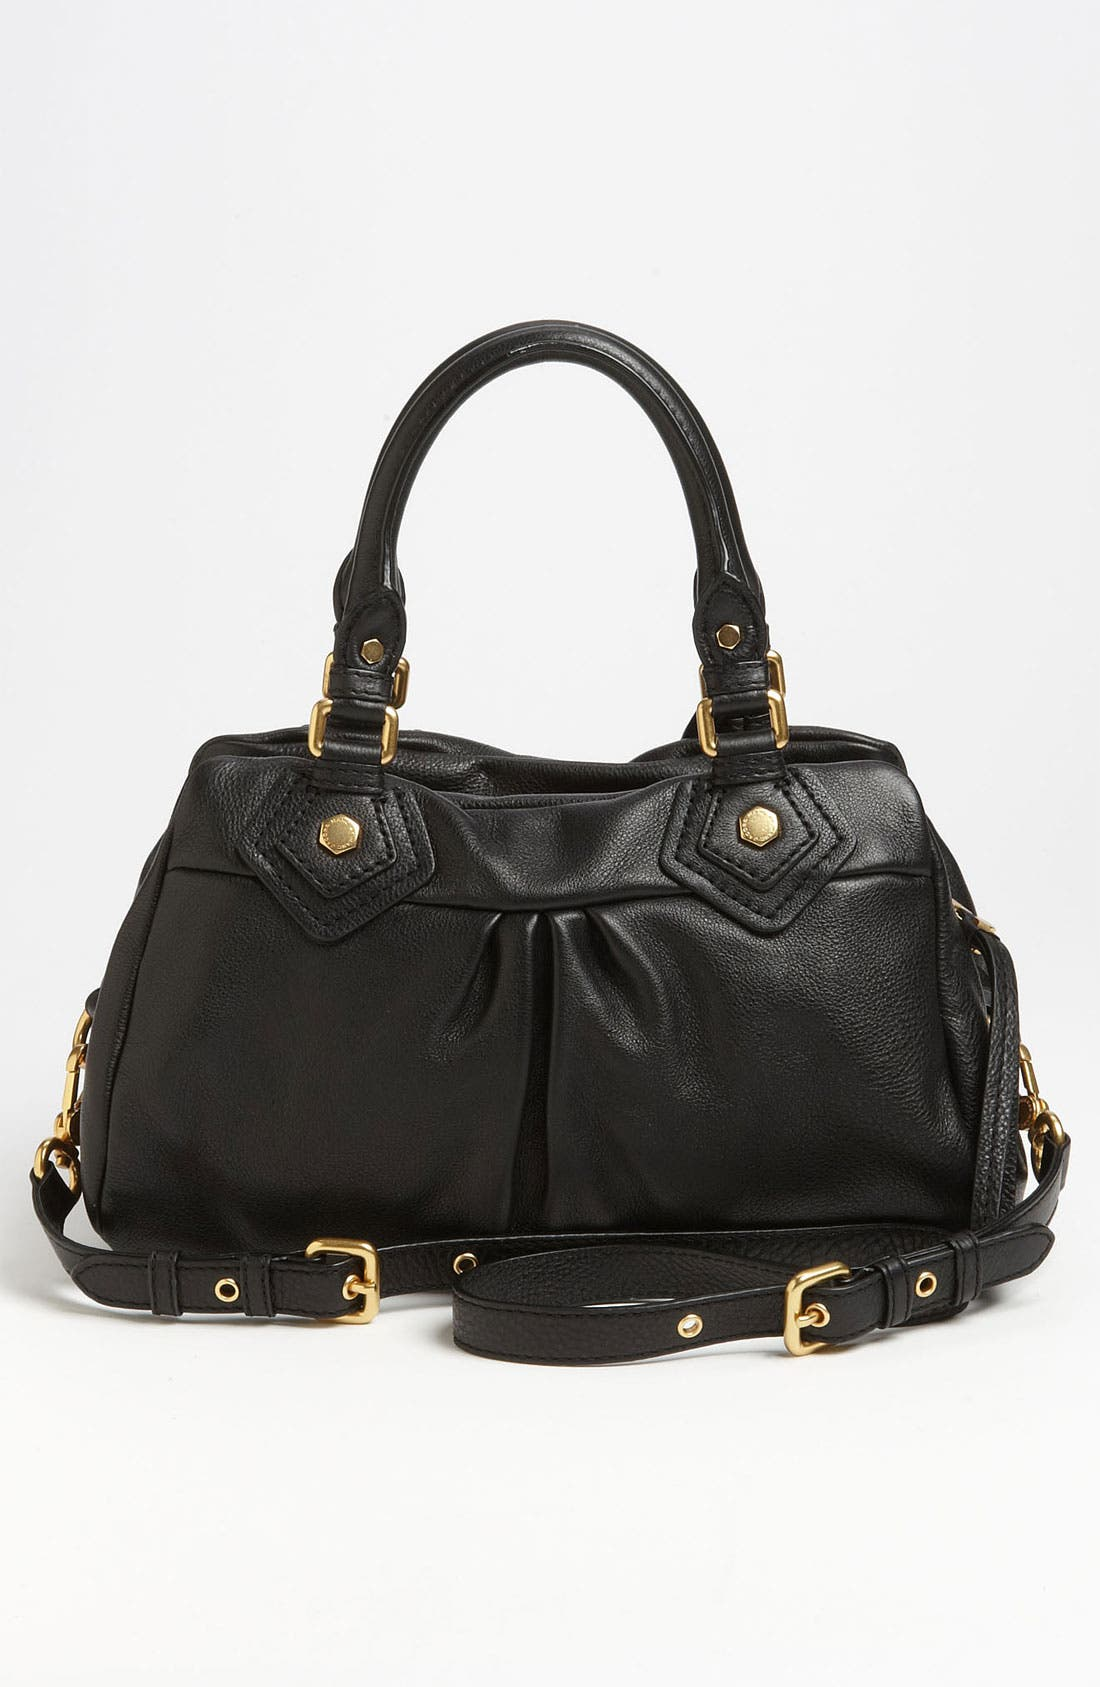 MARC BY MARC JACOBS 'Classic Q - Baby Groovee' Leather Satchel,                             Alternate thumbnail 3, color,                             002